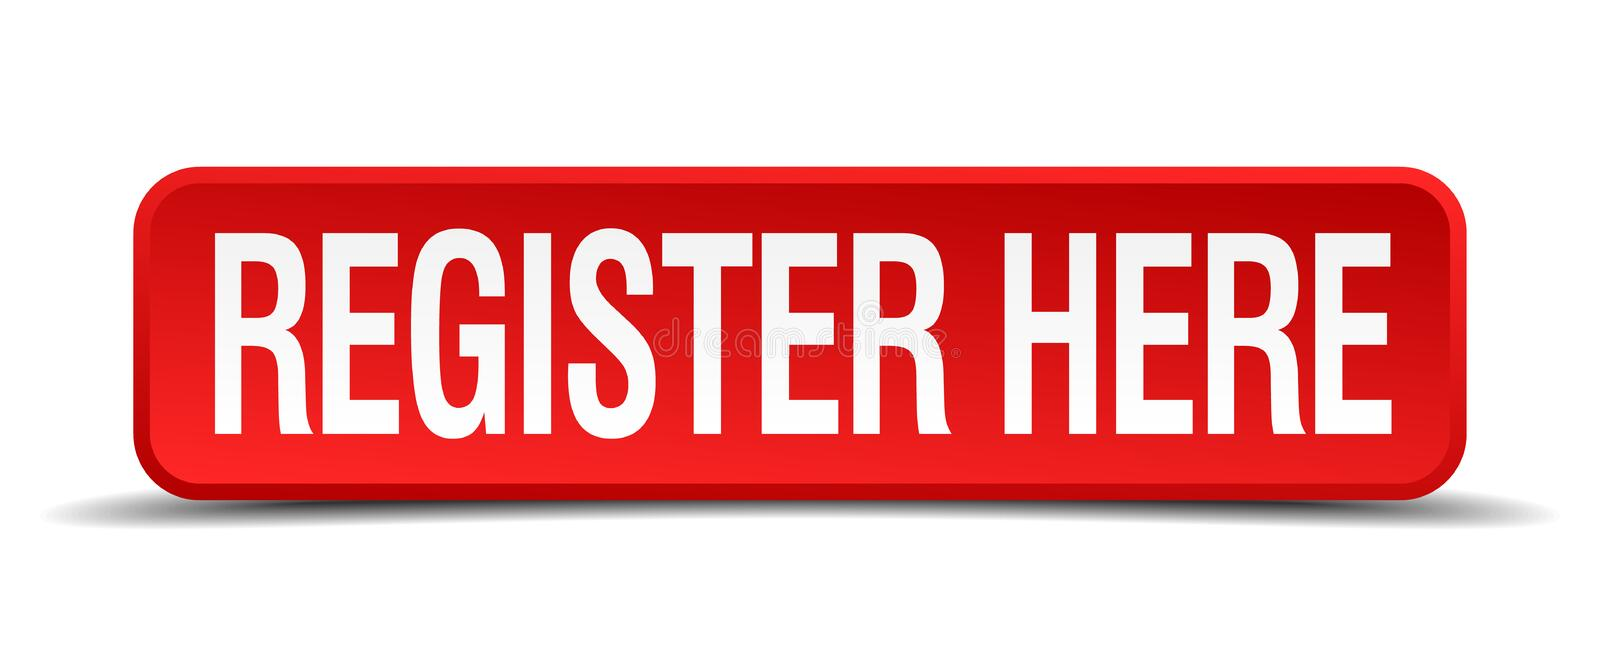 Register here red 3d square button royalty free illustration